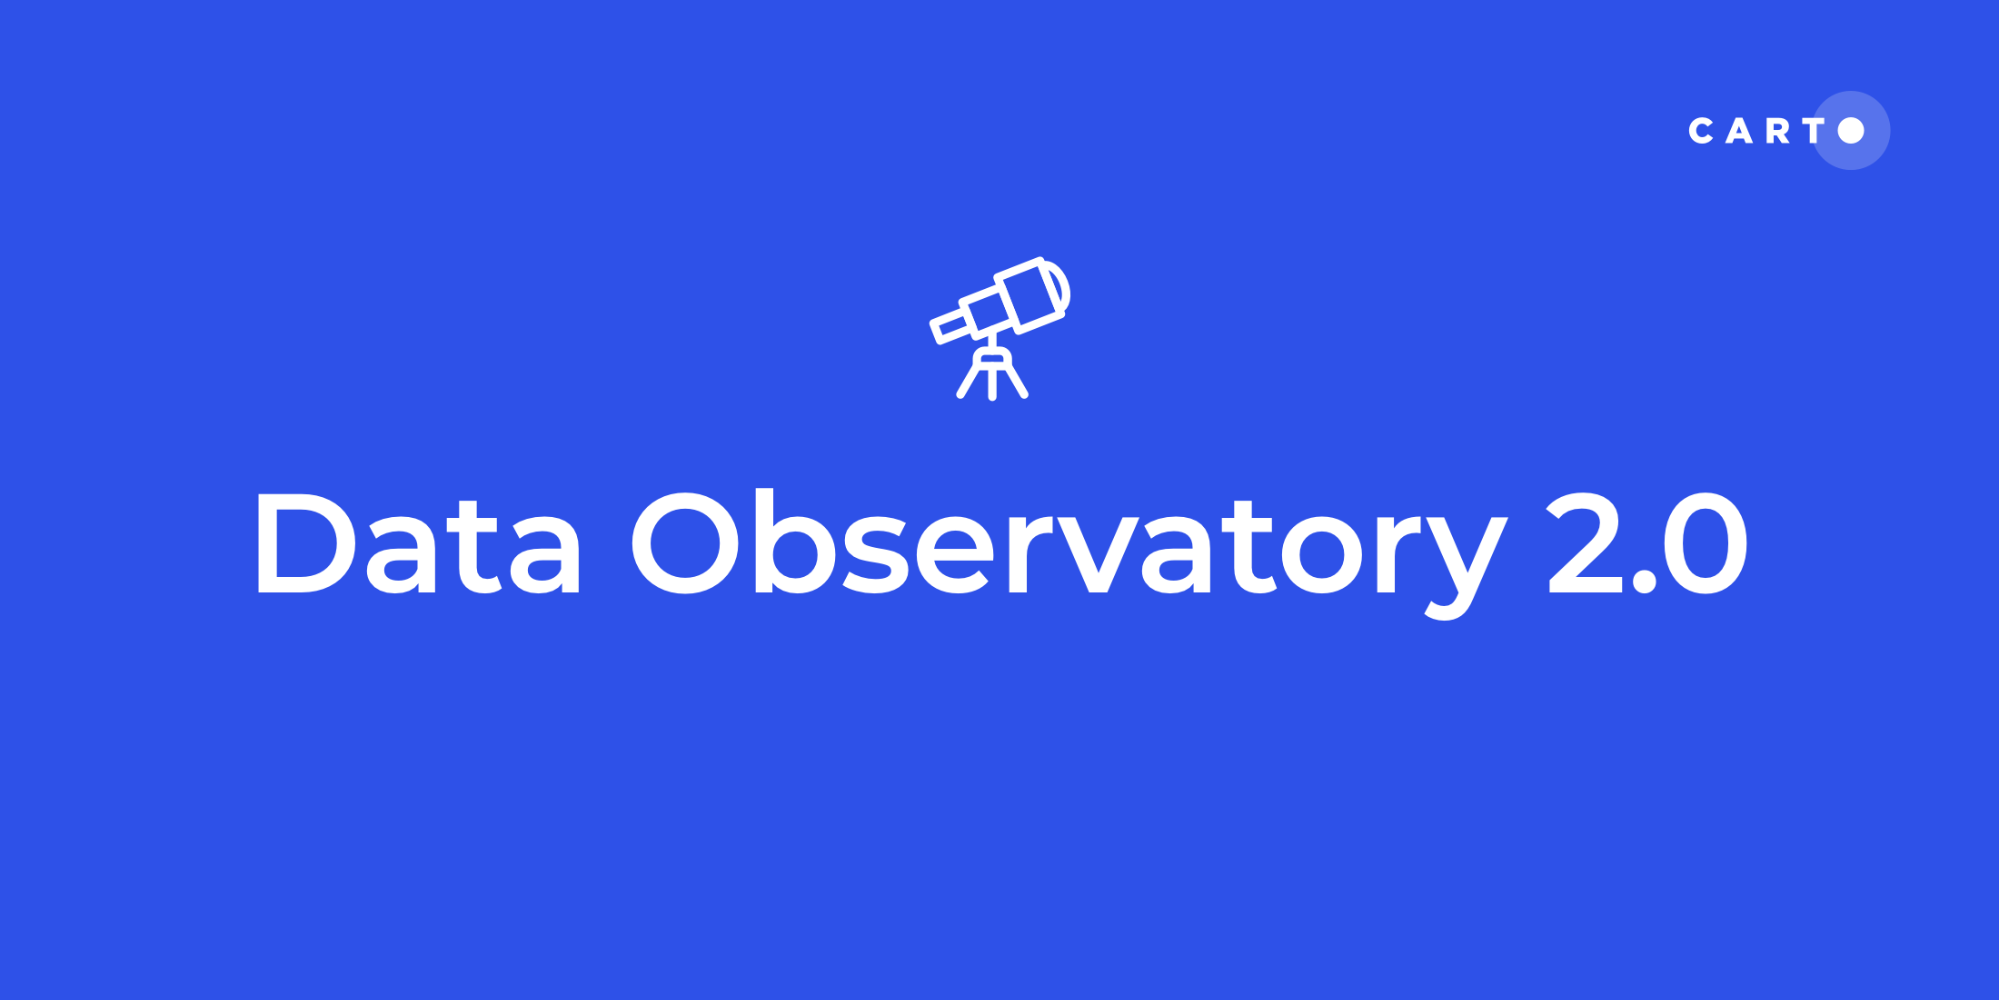 Spatial Data Simplified: Introducing Data Observatory 2.0